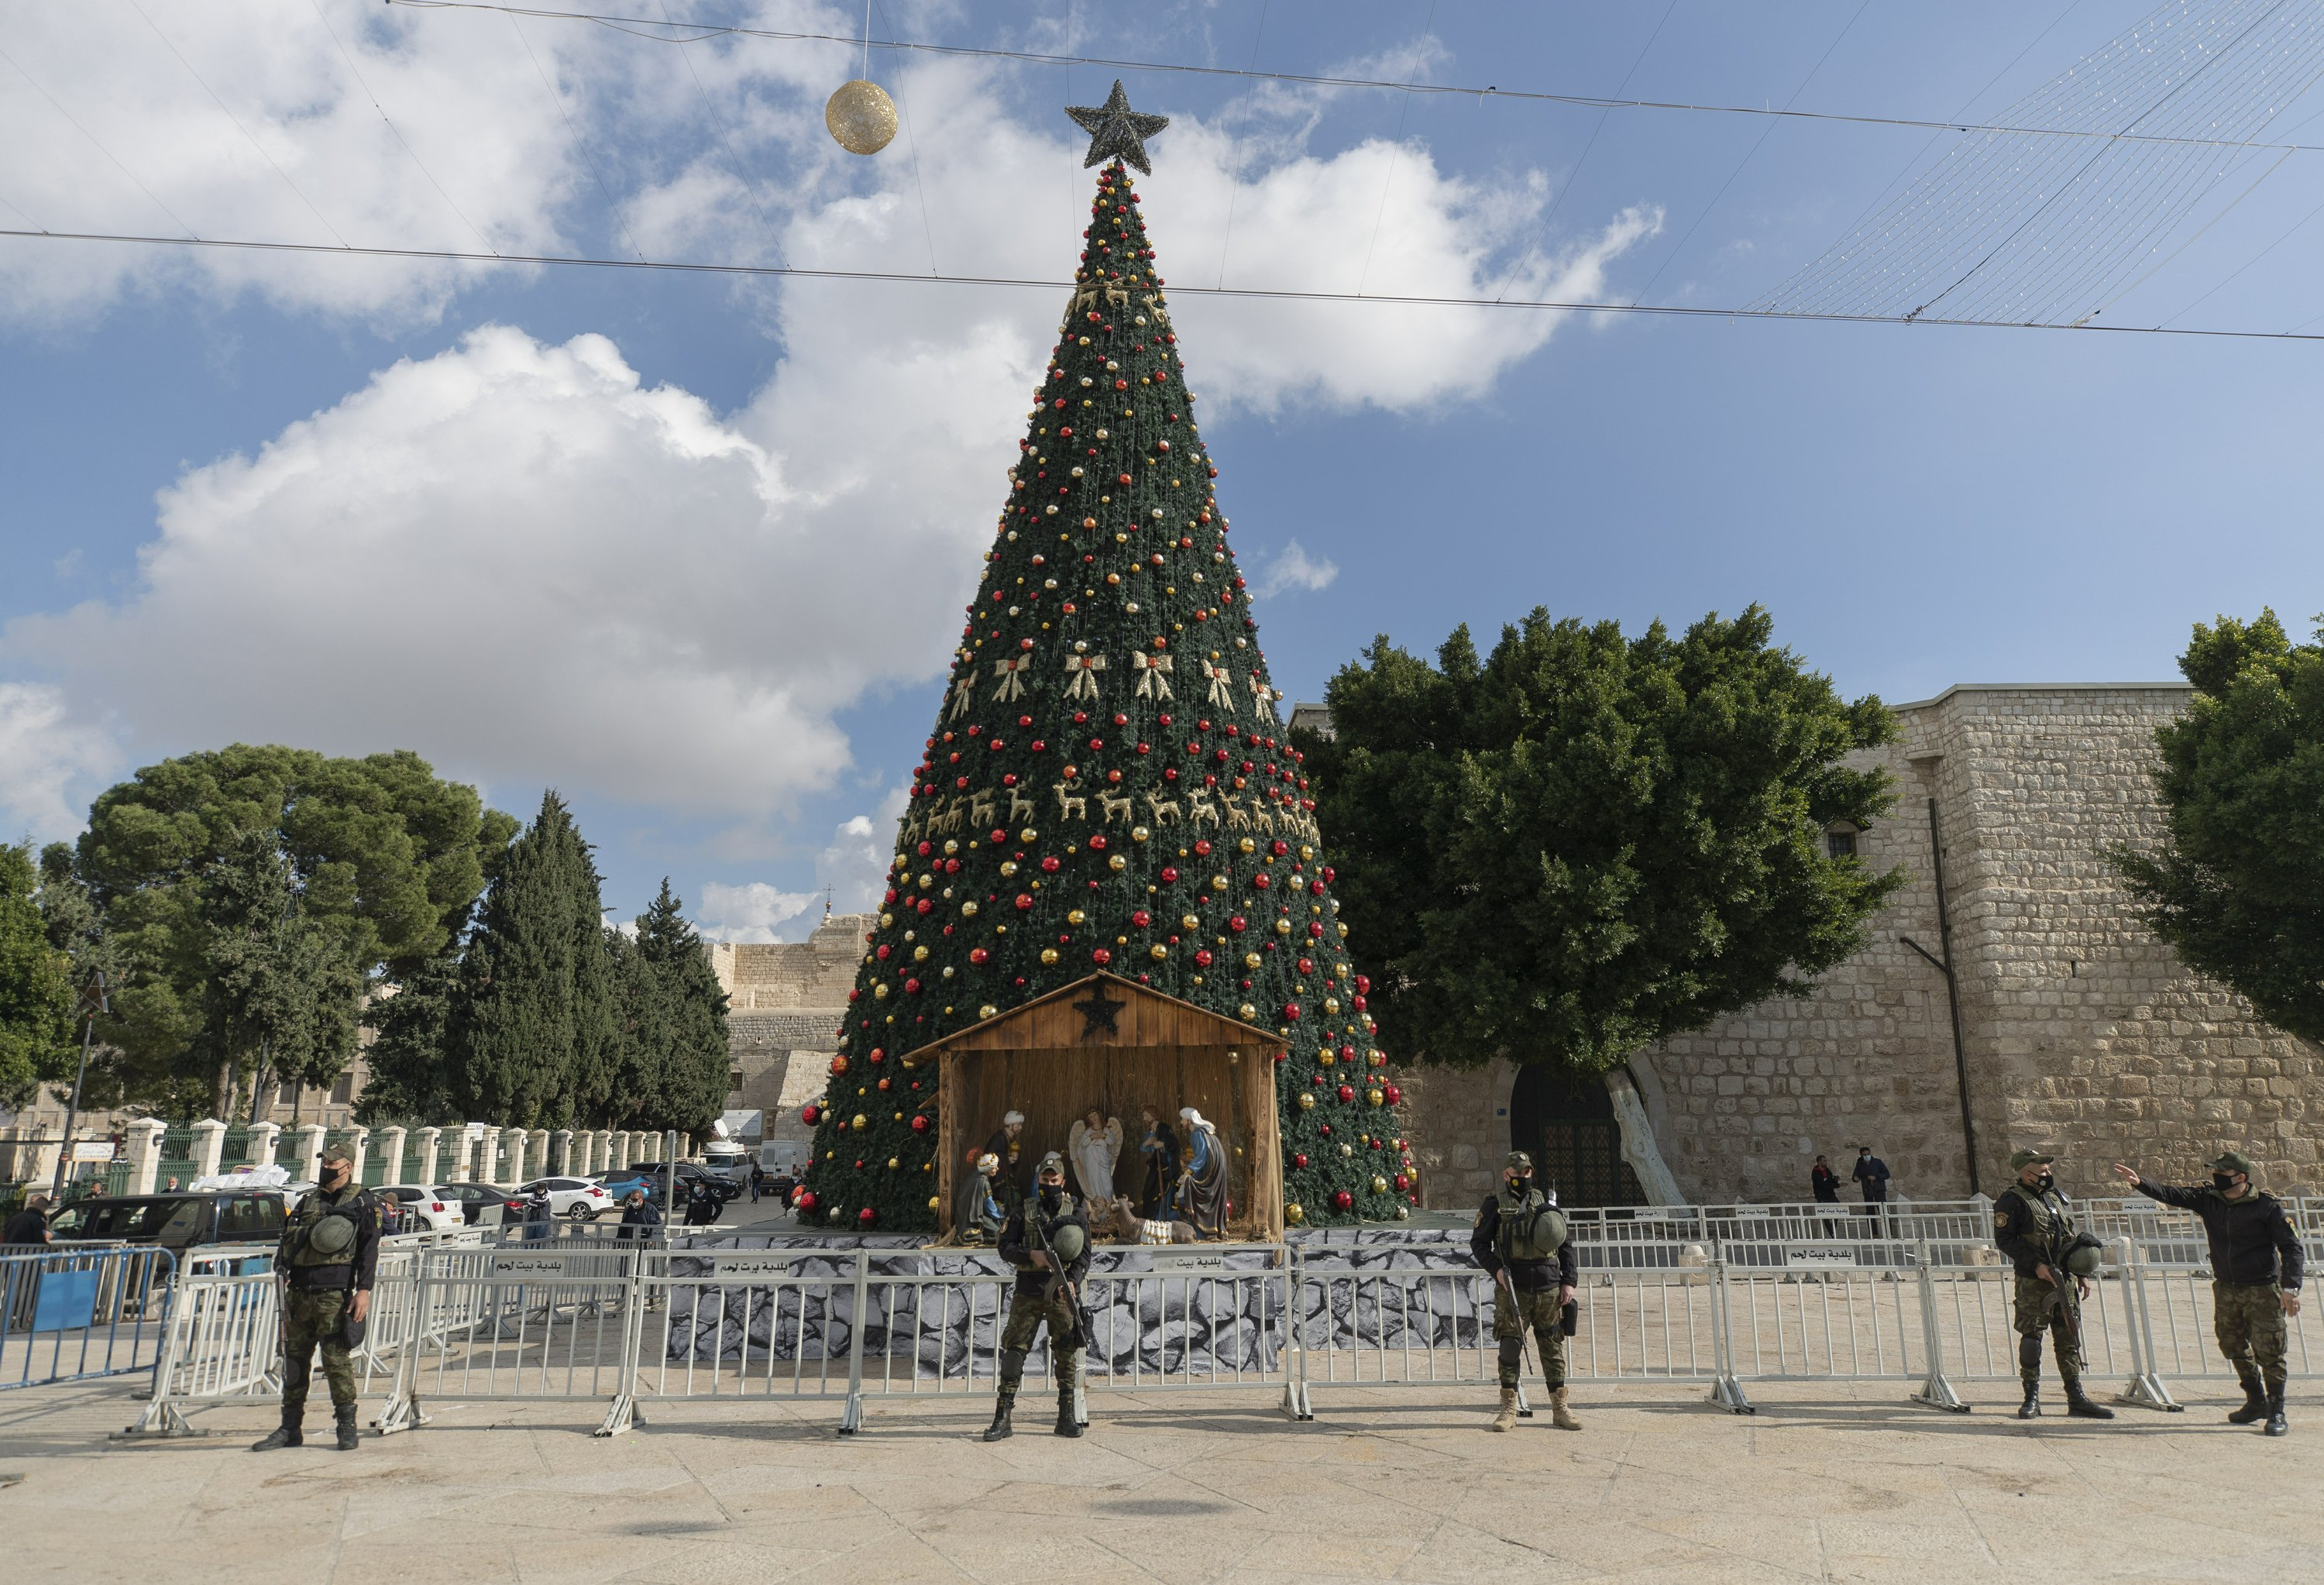 Coronavirus dampens Christmas joy in Bethlehem and elsewhere – Associated Press